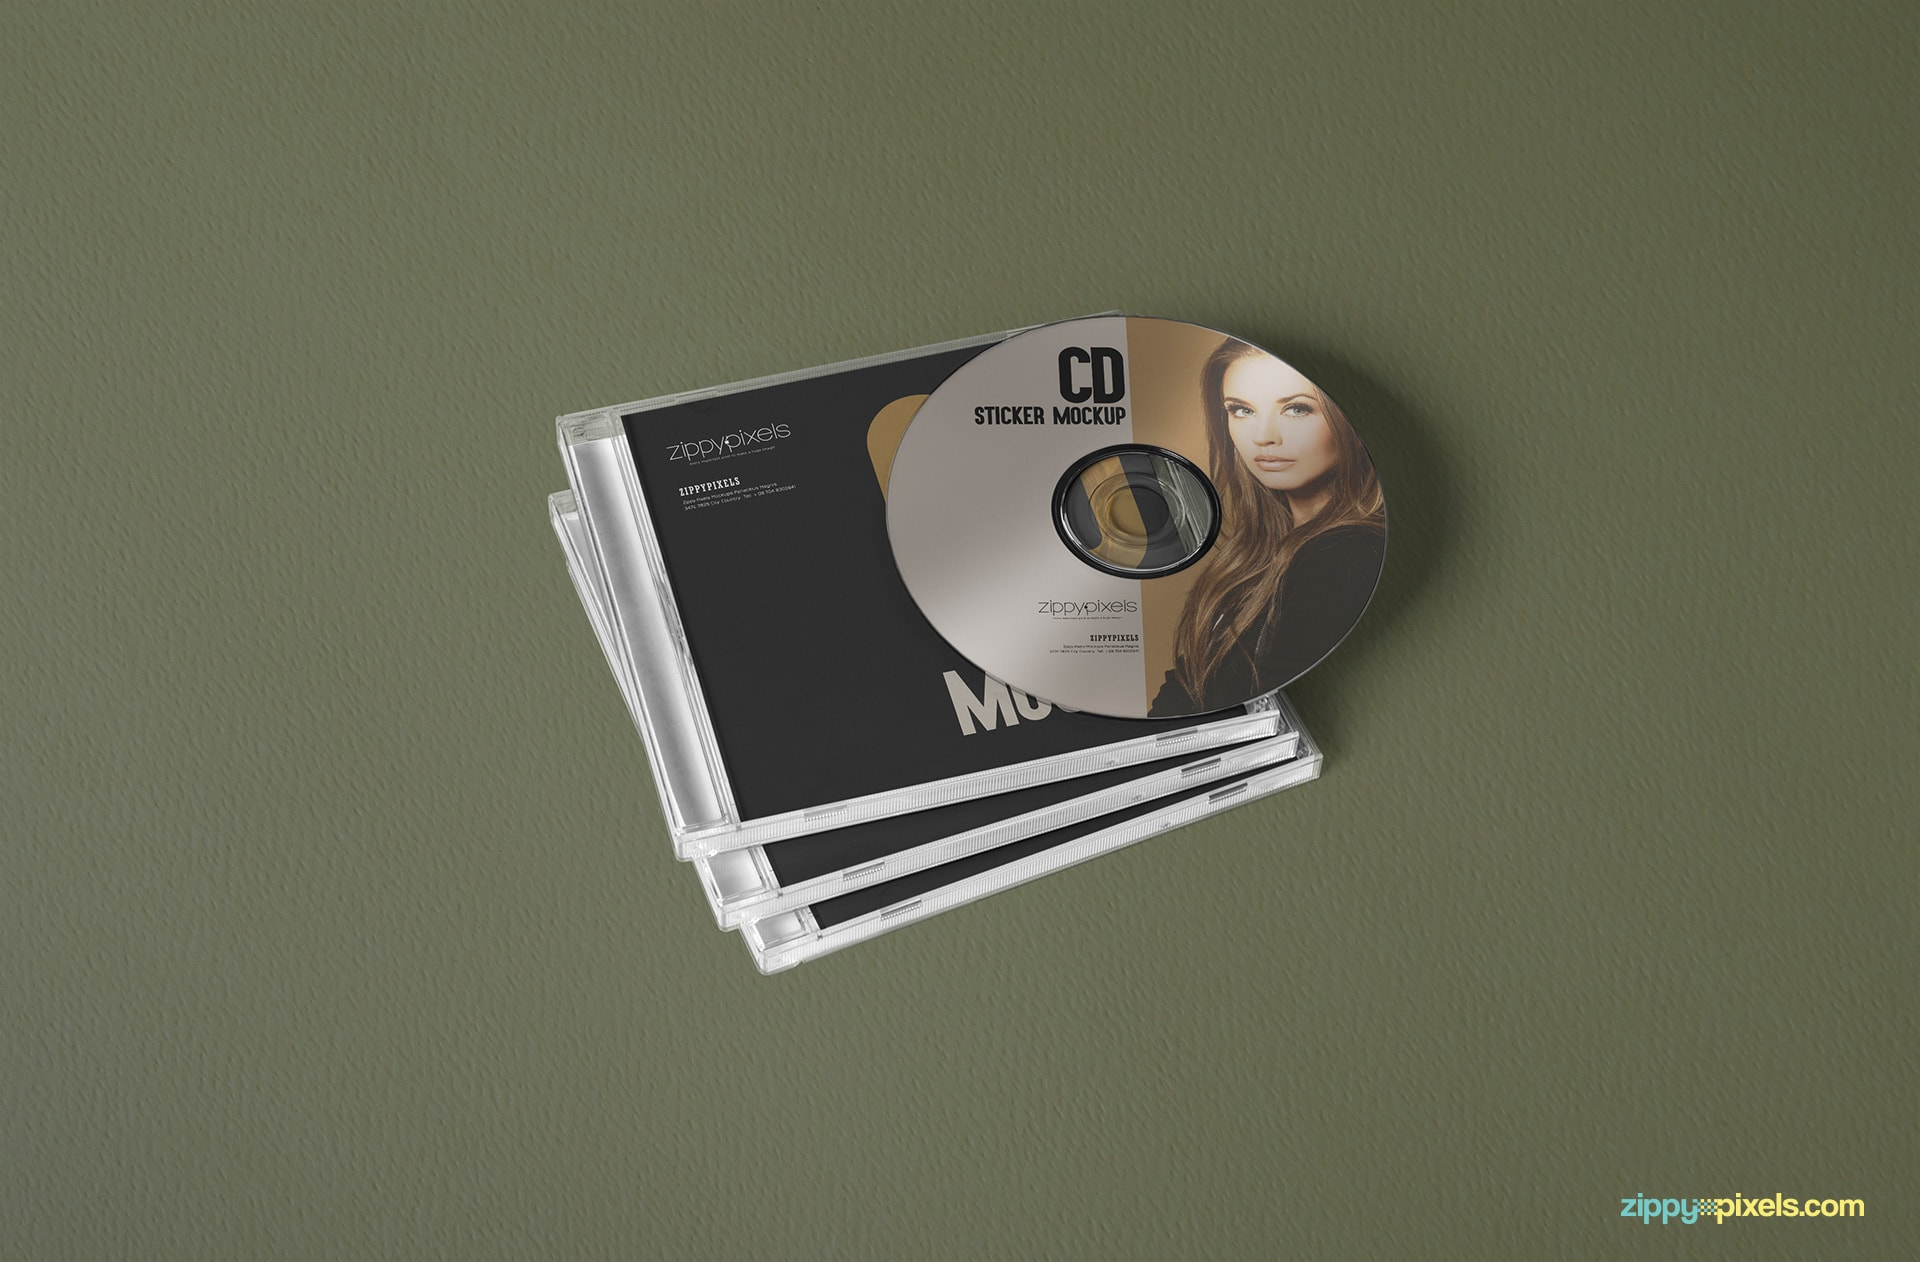 plastic-cd-jewel-case-mockup-stack-view-with-dvd